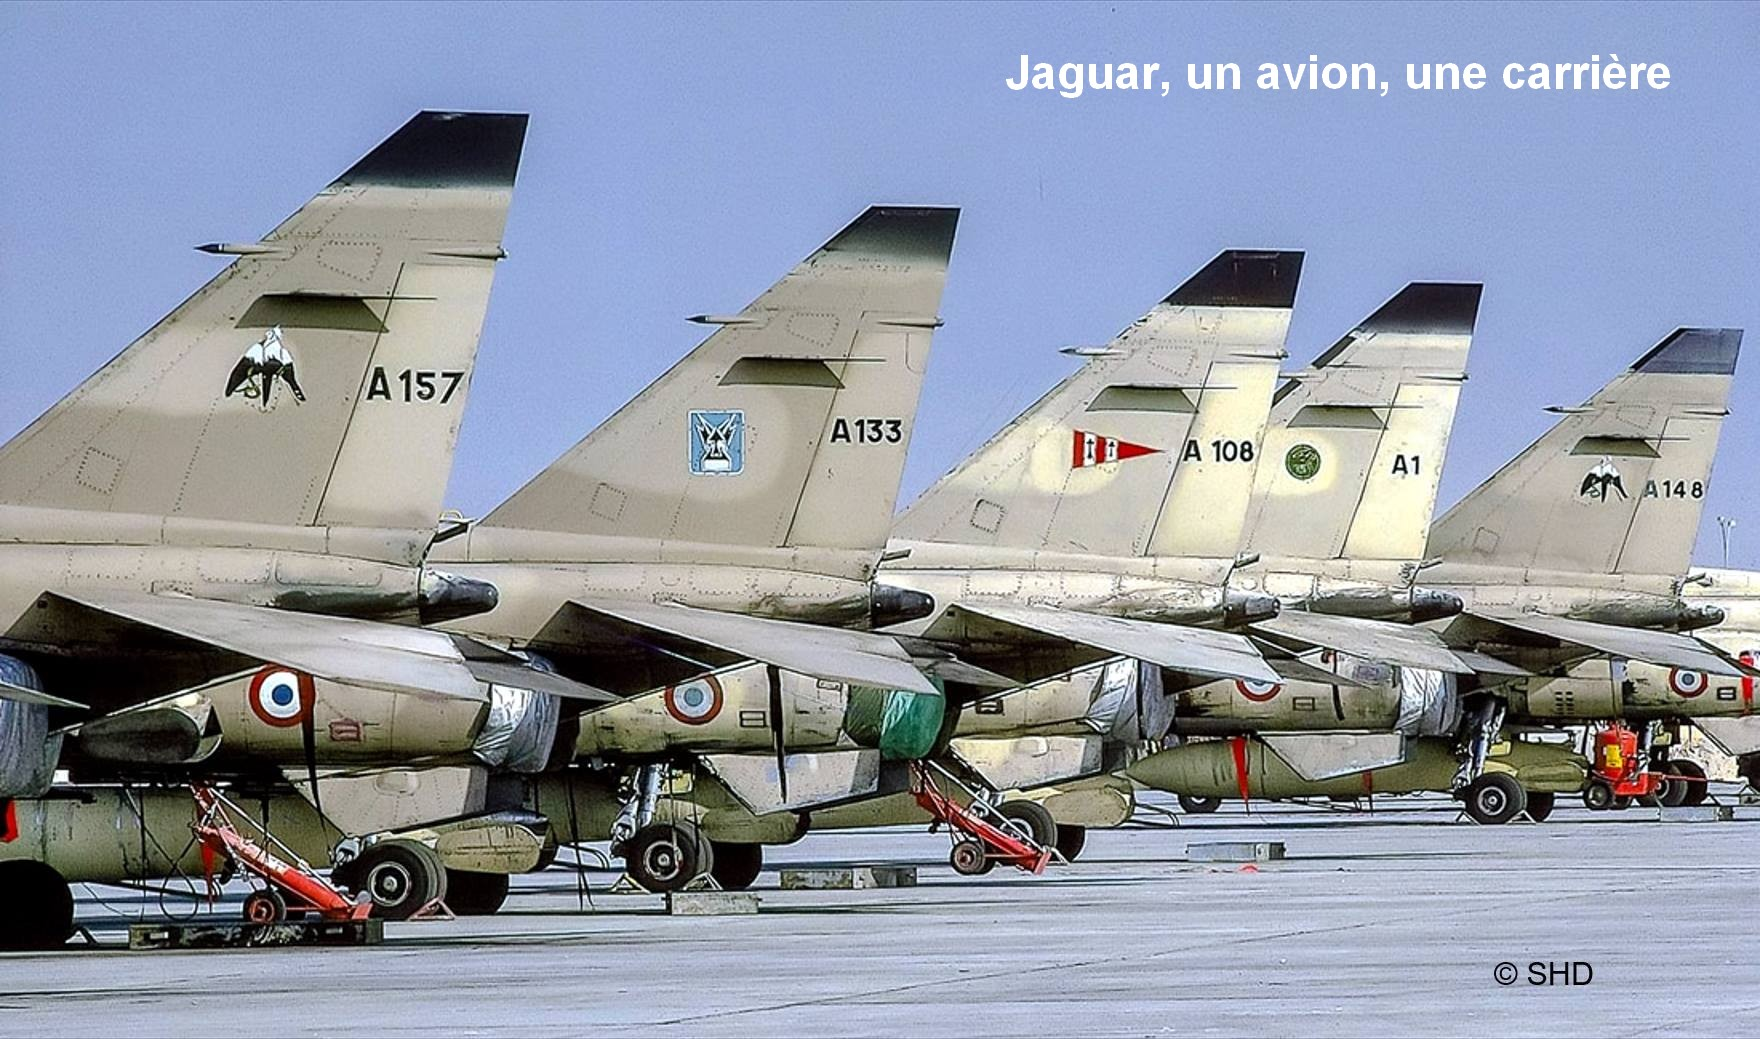 Face Book Jaguar, un avion, une carrière